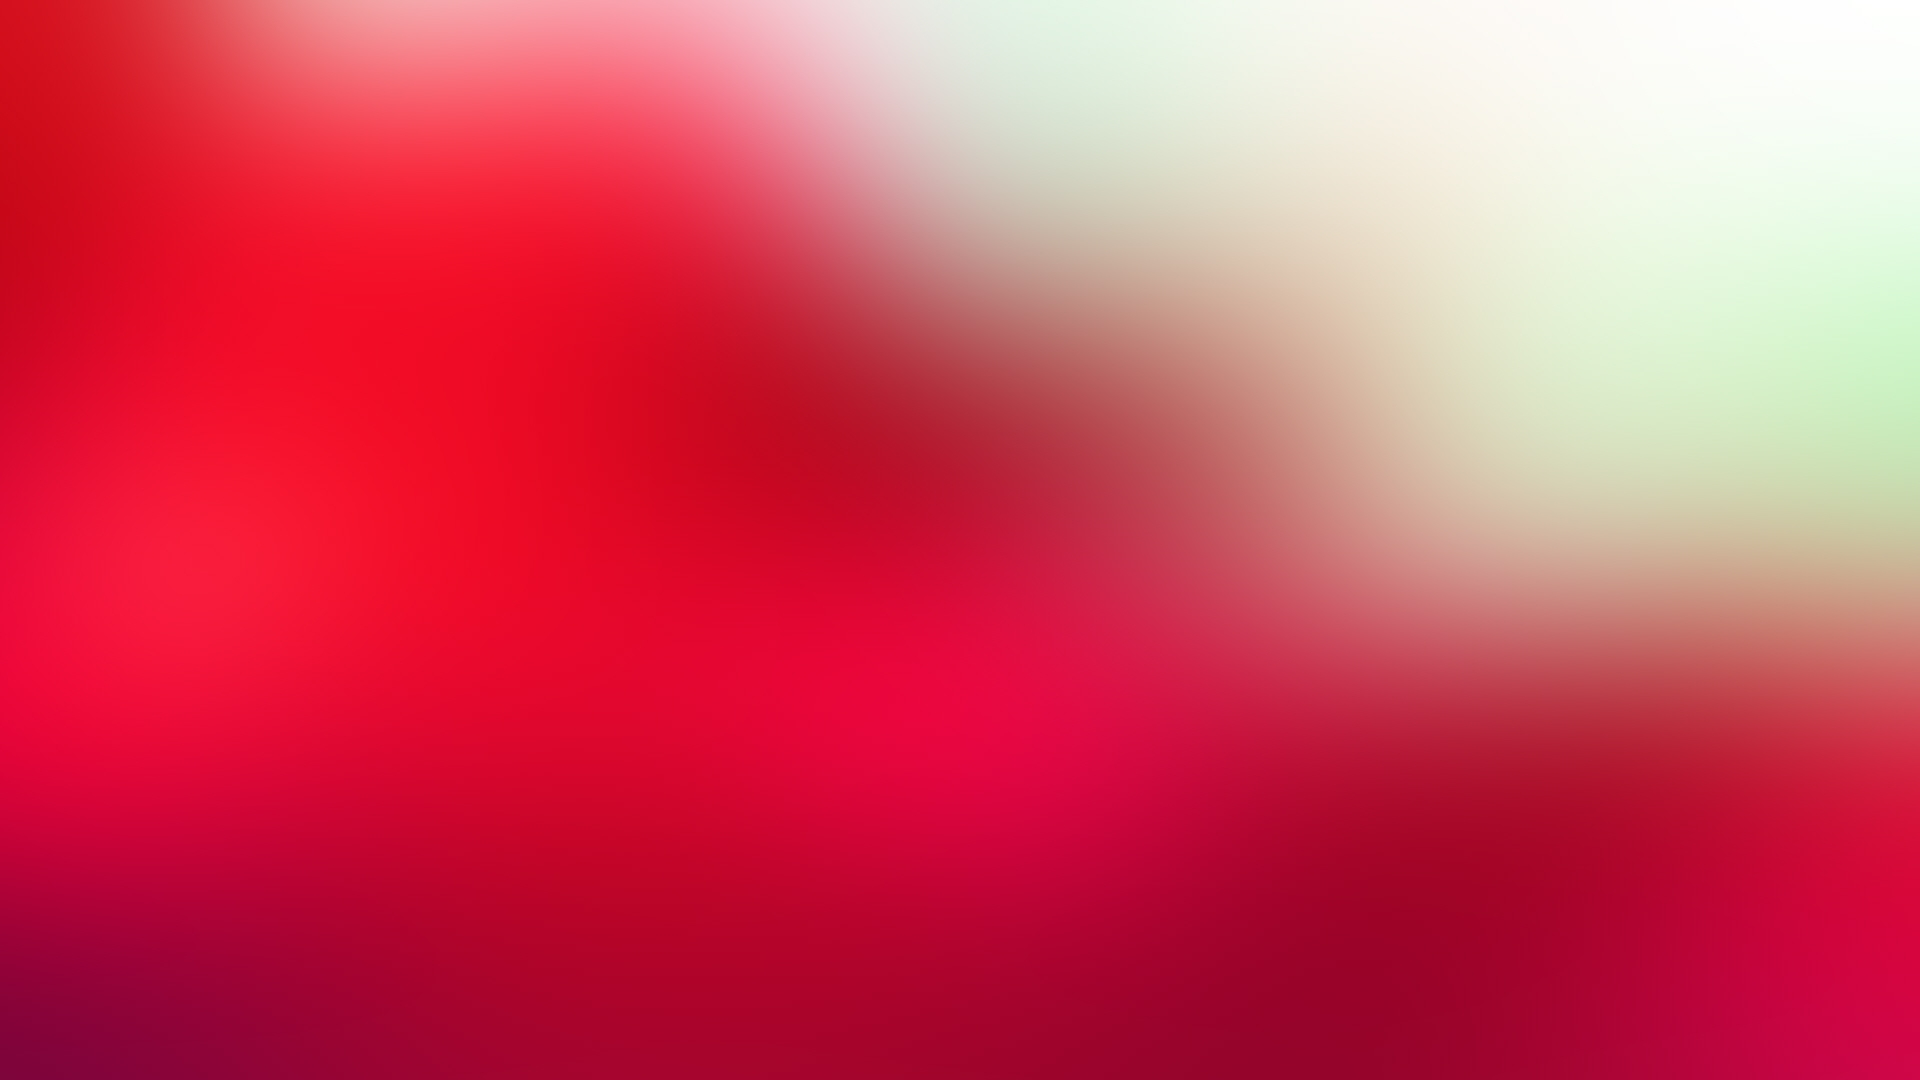 Download Wallpaper 1920x1080 red, white, spots Full HD ...